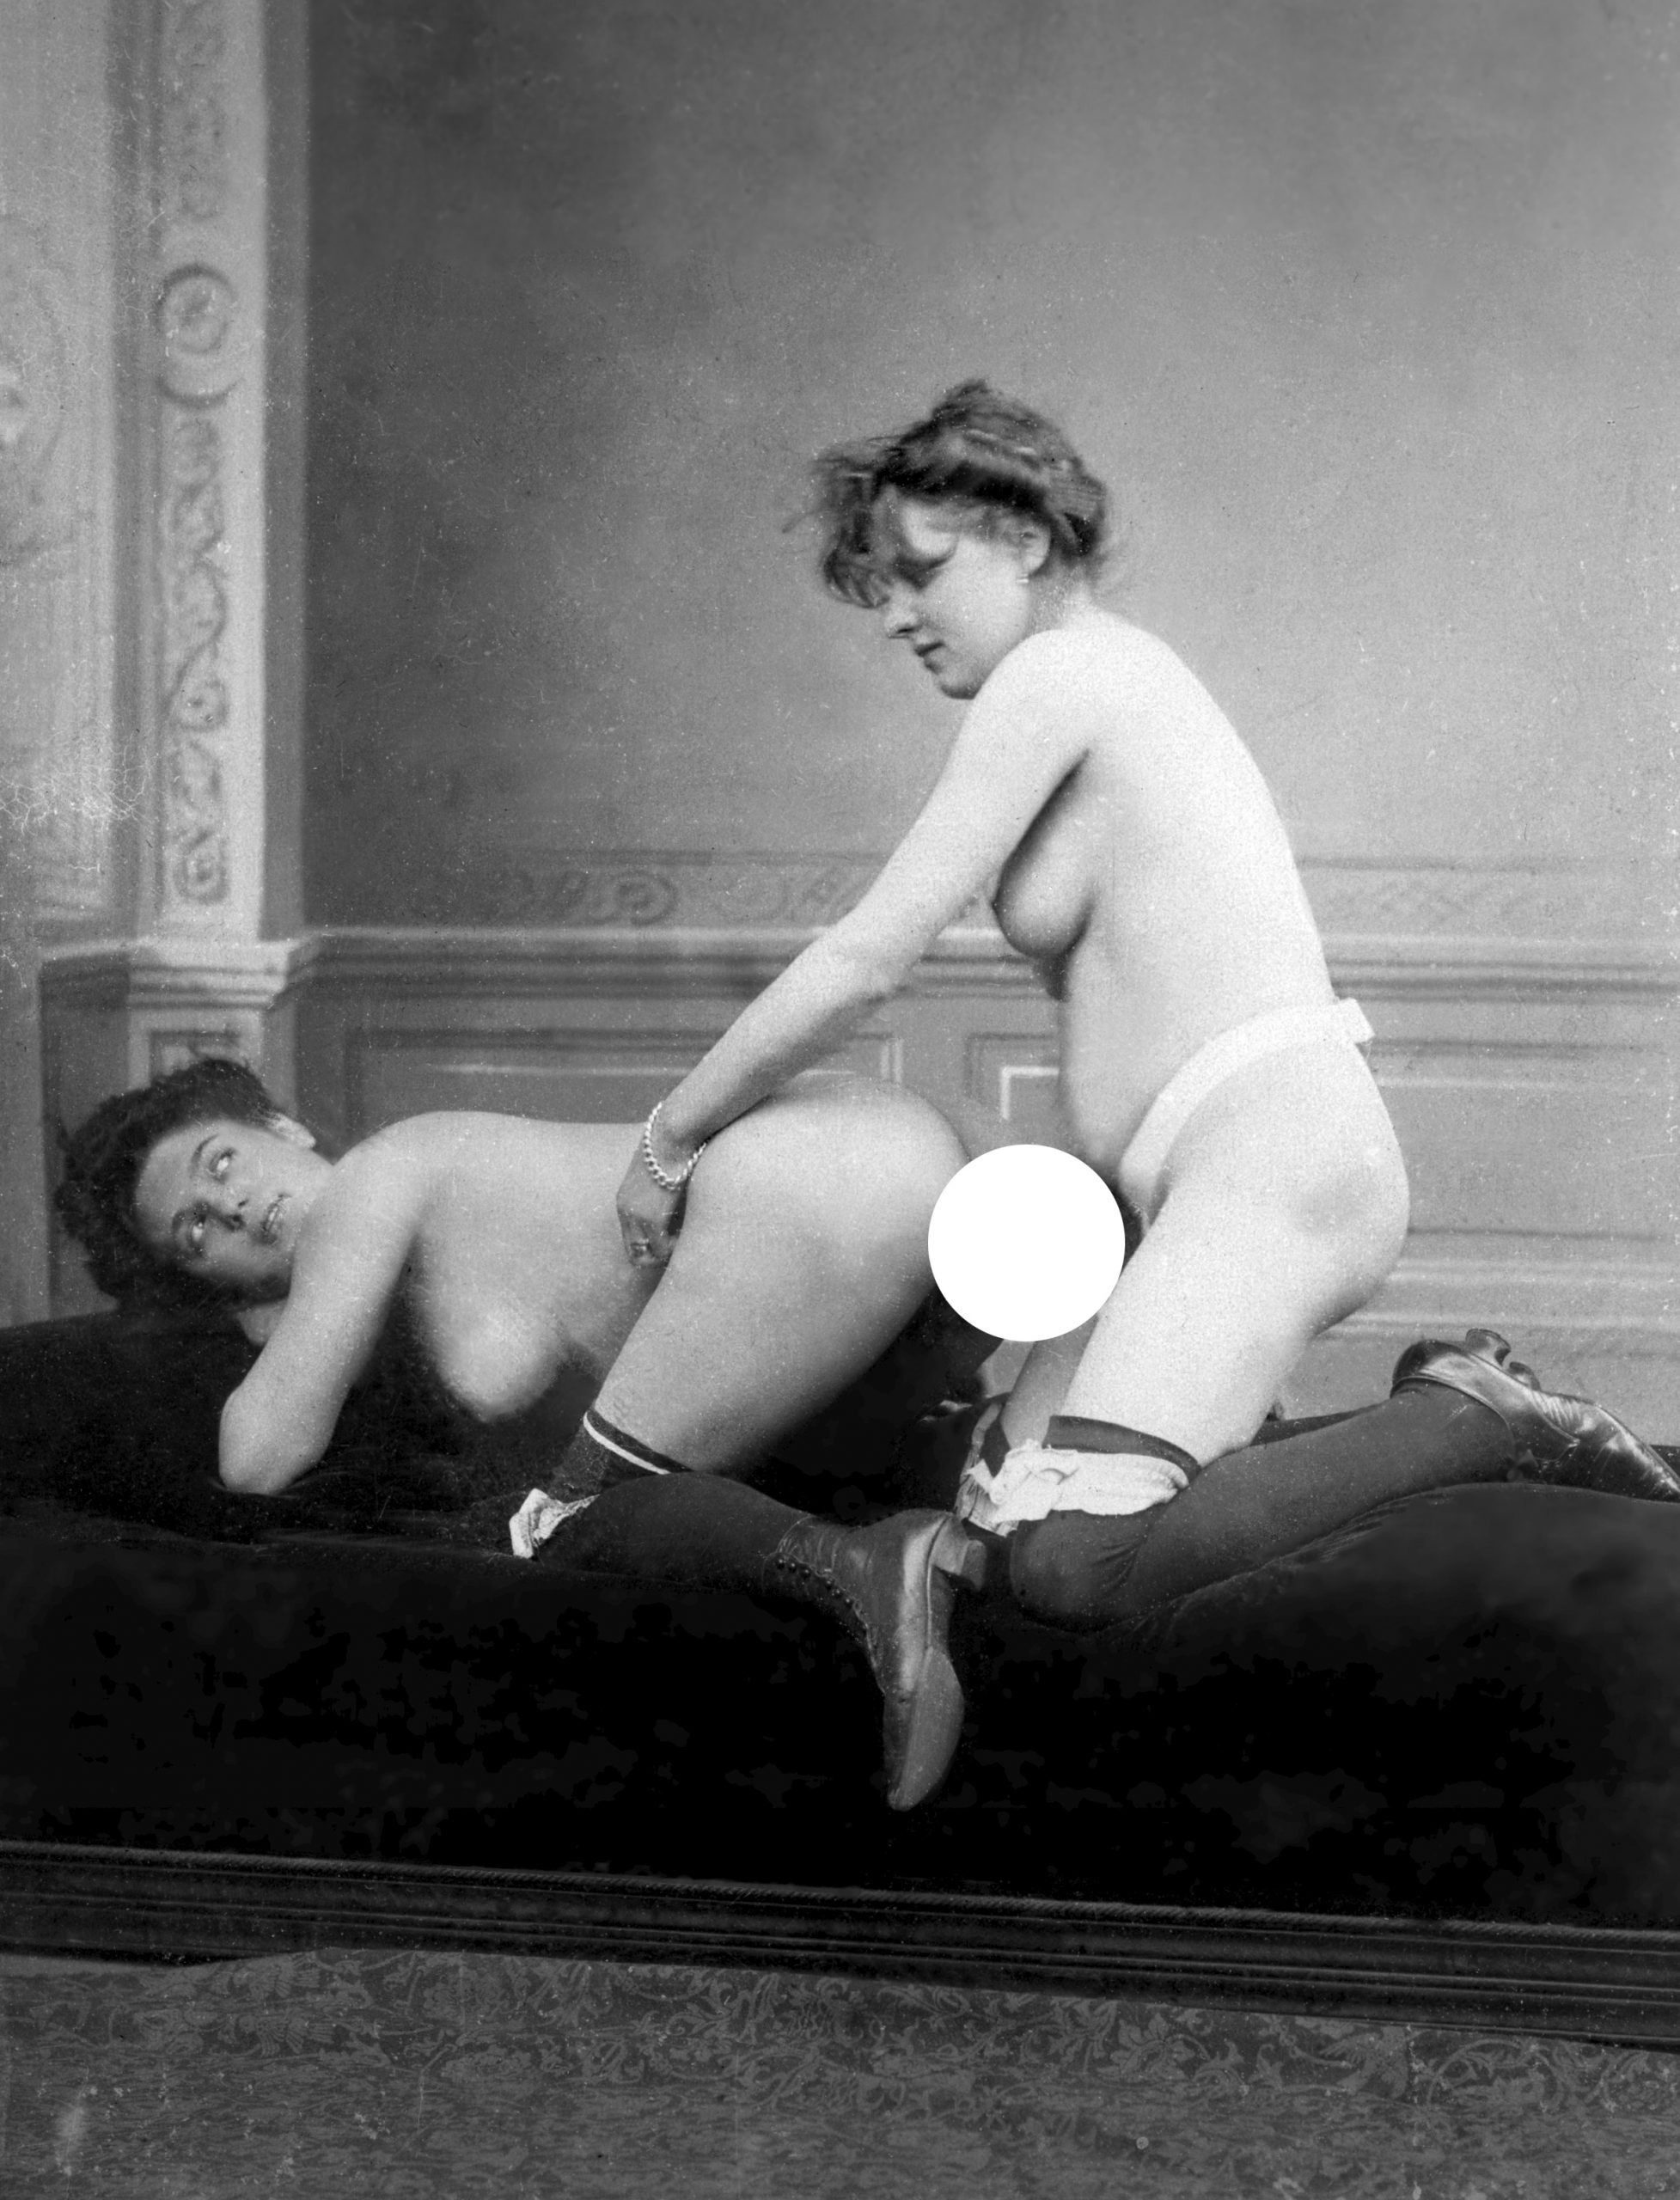 Sex Toy History